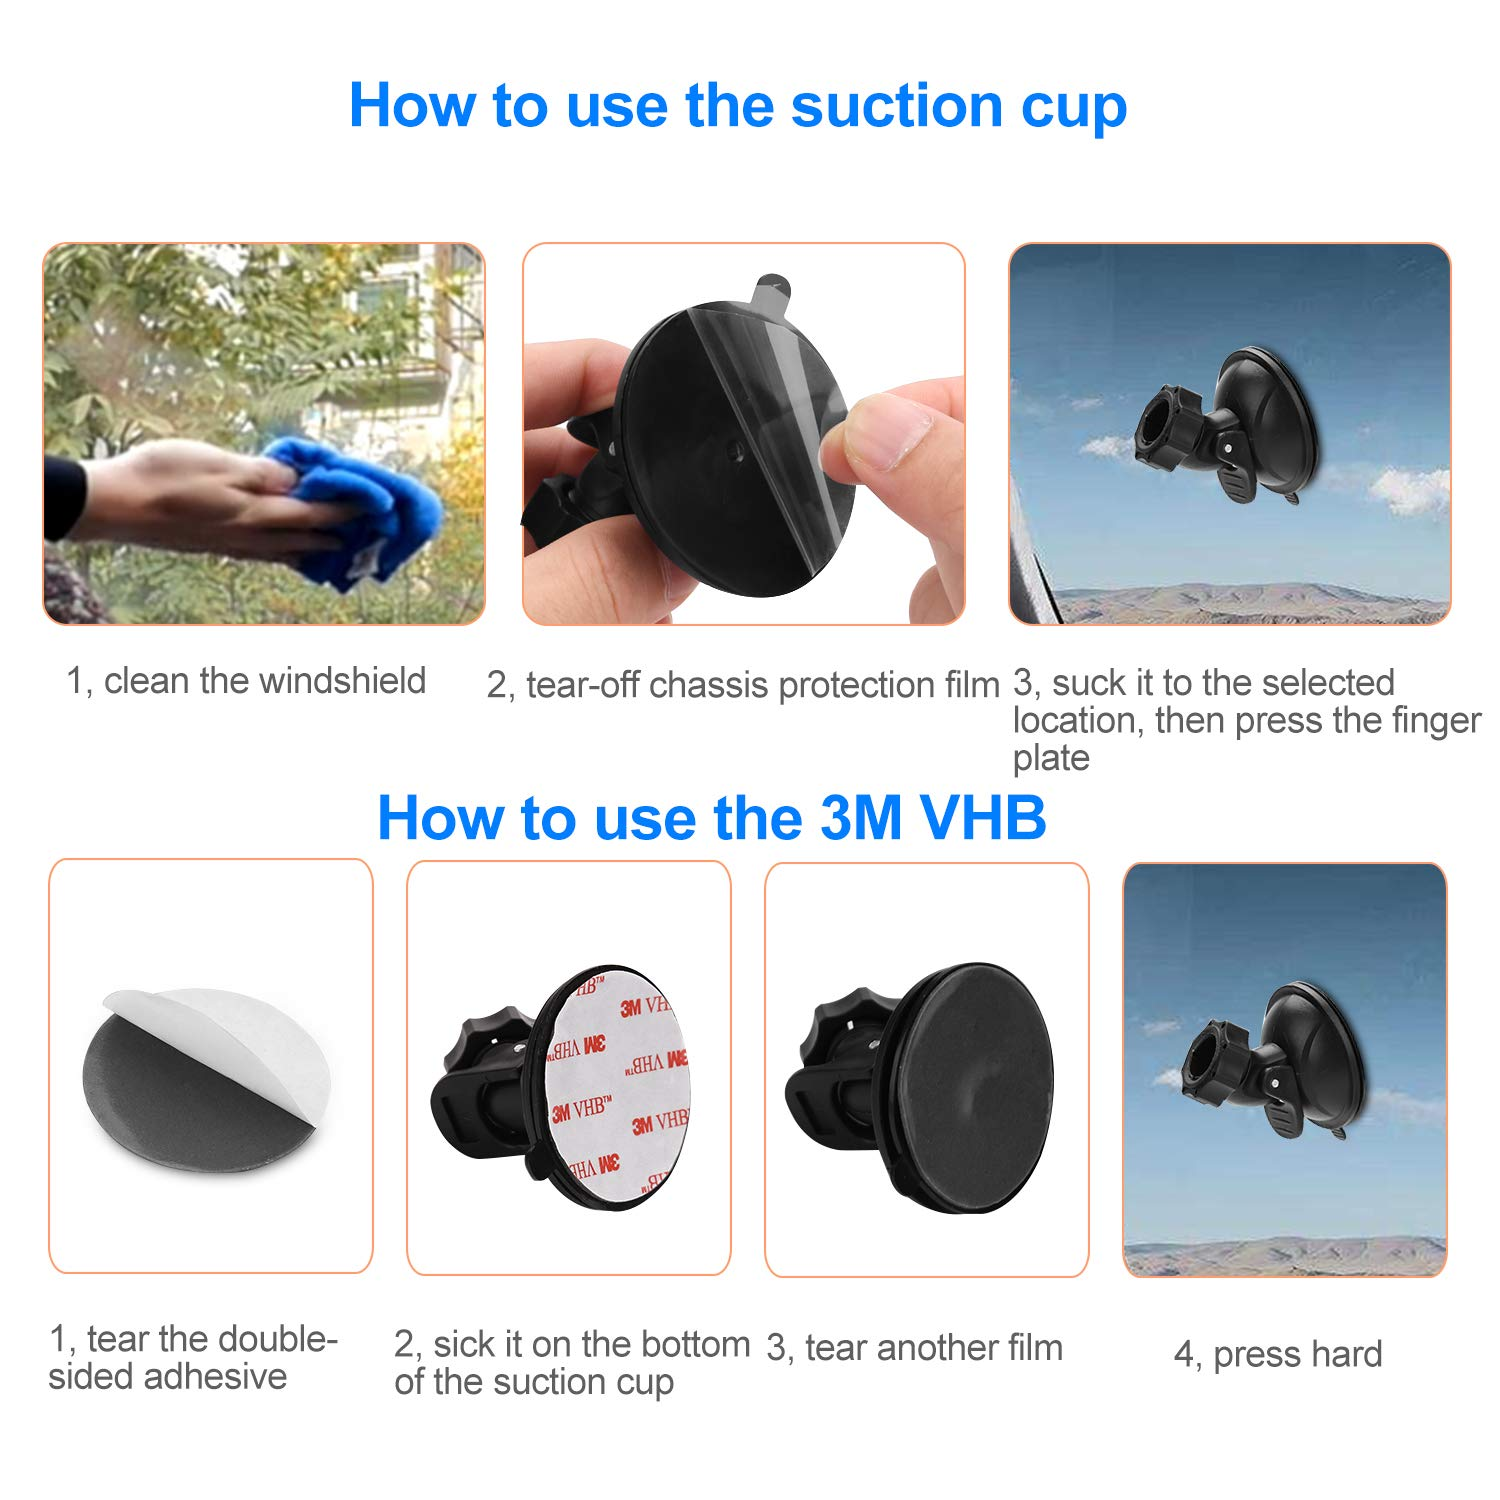 YI 2.7 Z-Edge Z3 3 and Most Other Dash Cam Dry and Wet 3 Wipes with 16 Different Points for AUKEY TOGUARD APEMAN Dash Cam Suction Cup Mount Crosstour 3 x Glue Double Sided Adhesive Tapes